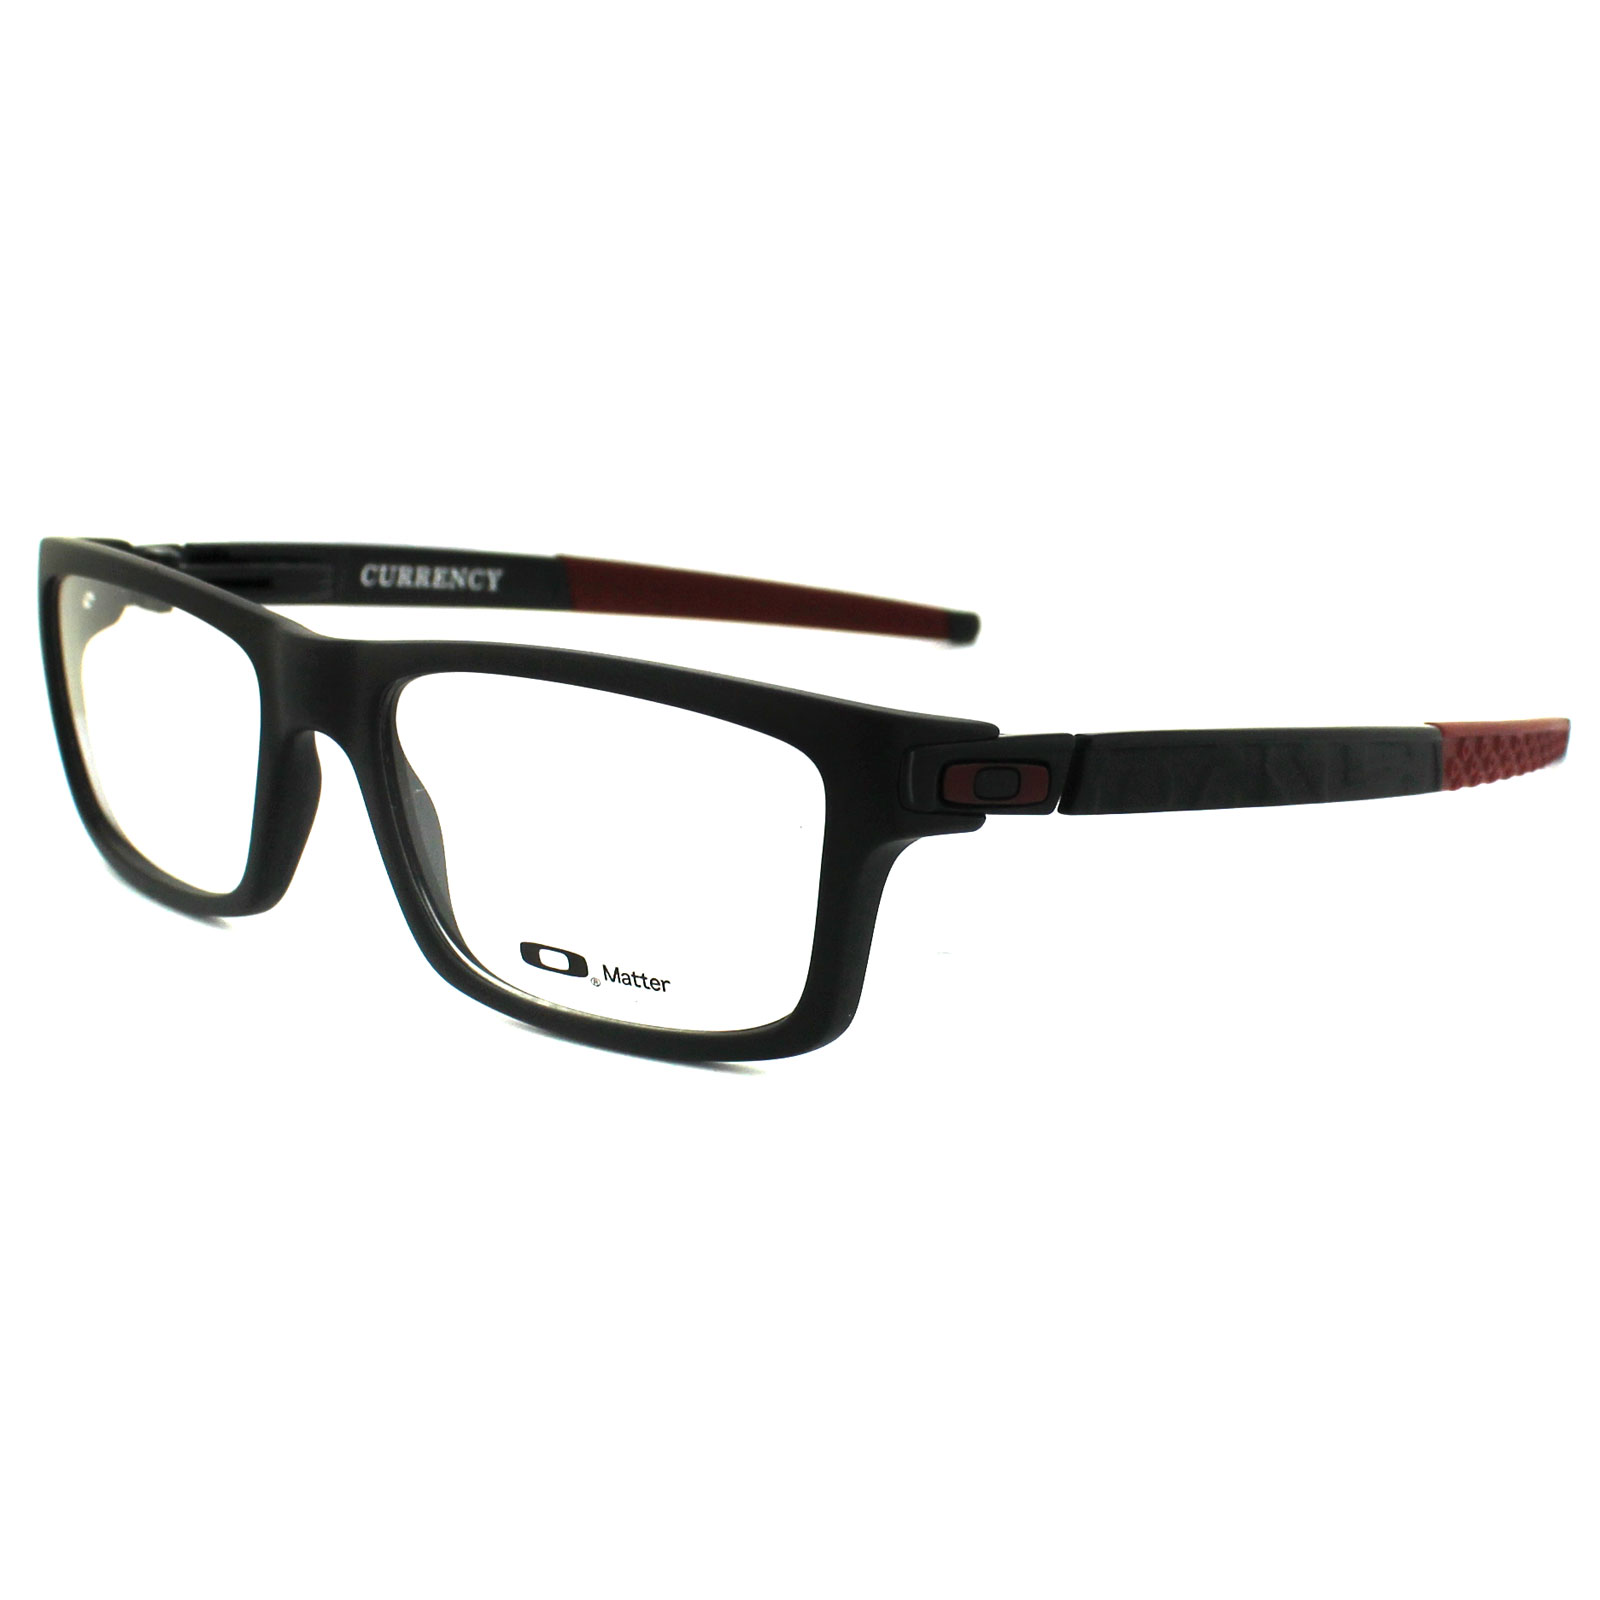 Big Frame Oakley Glasses : Oakley Glasses Frames Currency 8026-12 Satin Black/Red ...